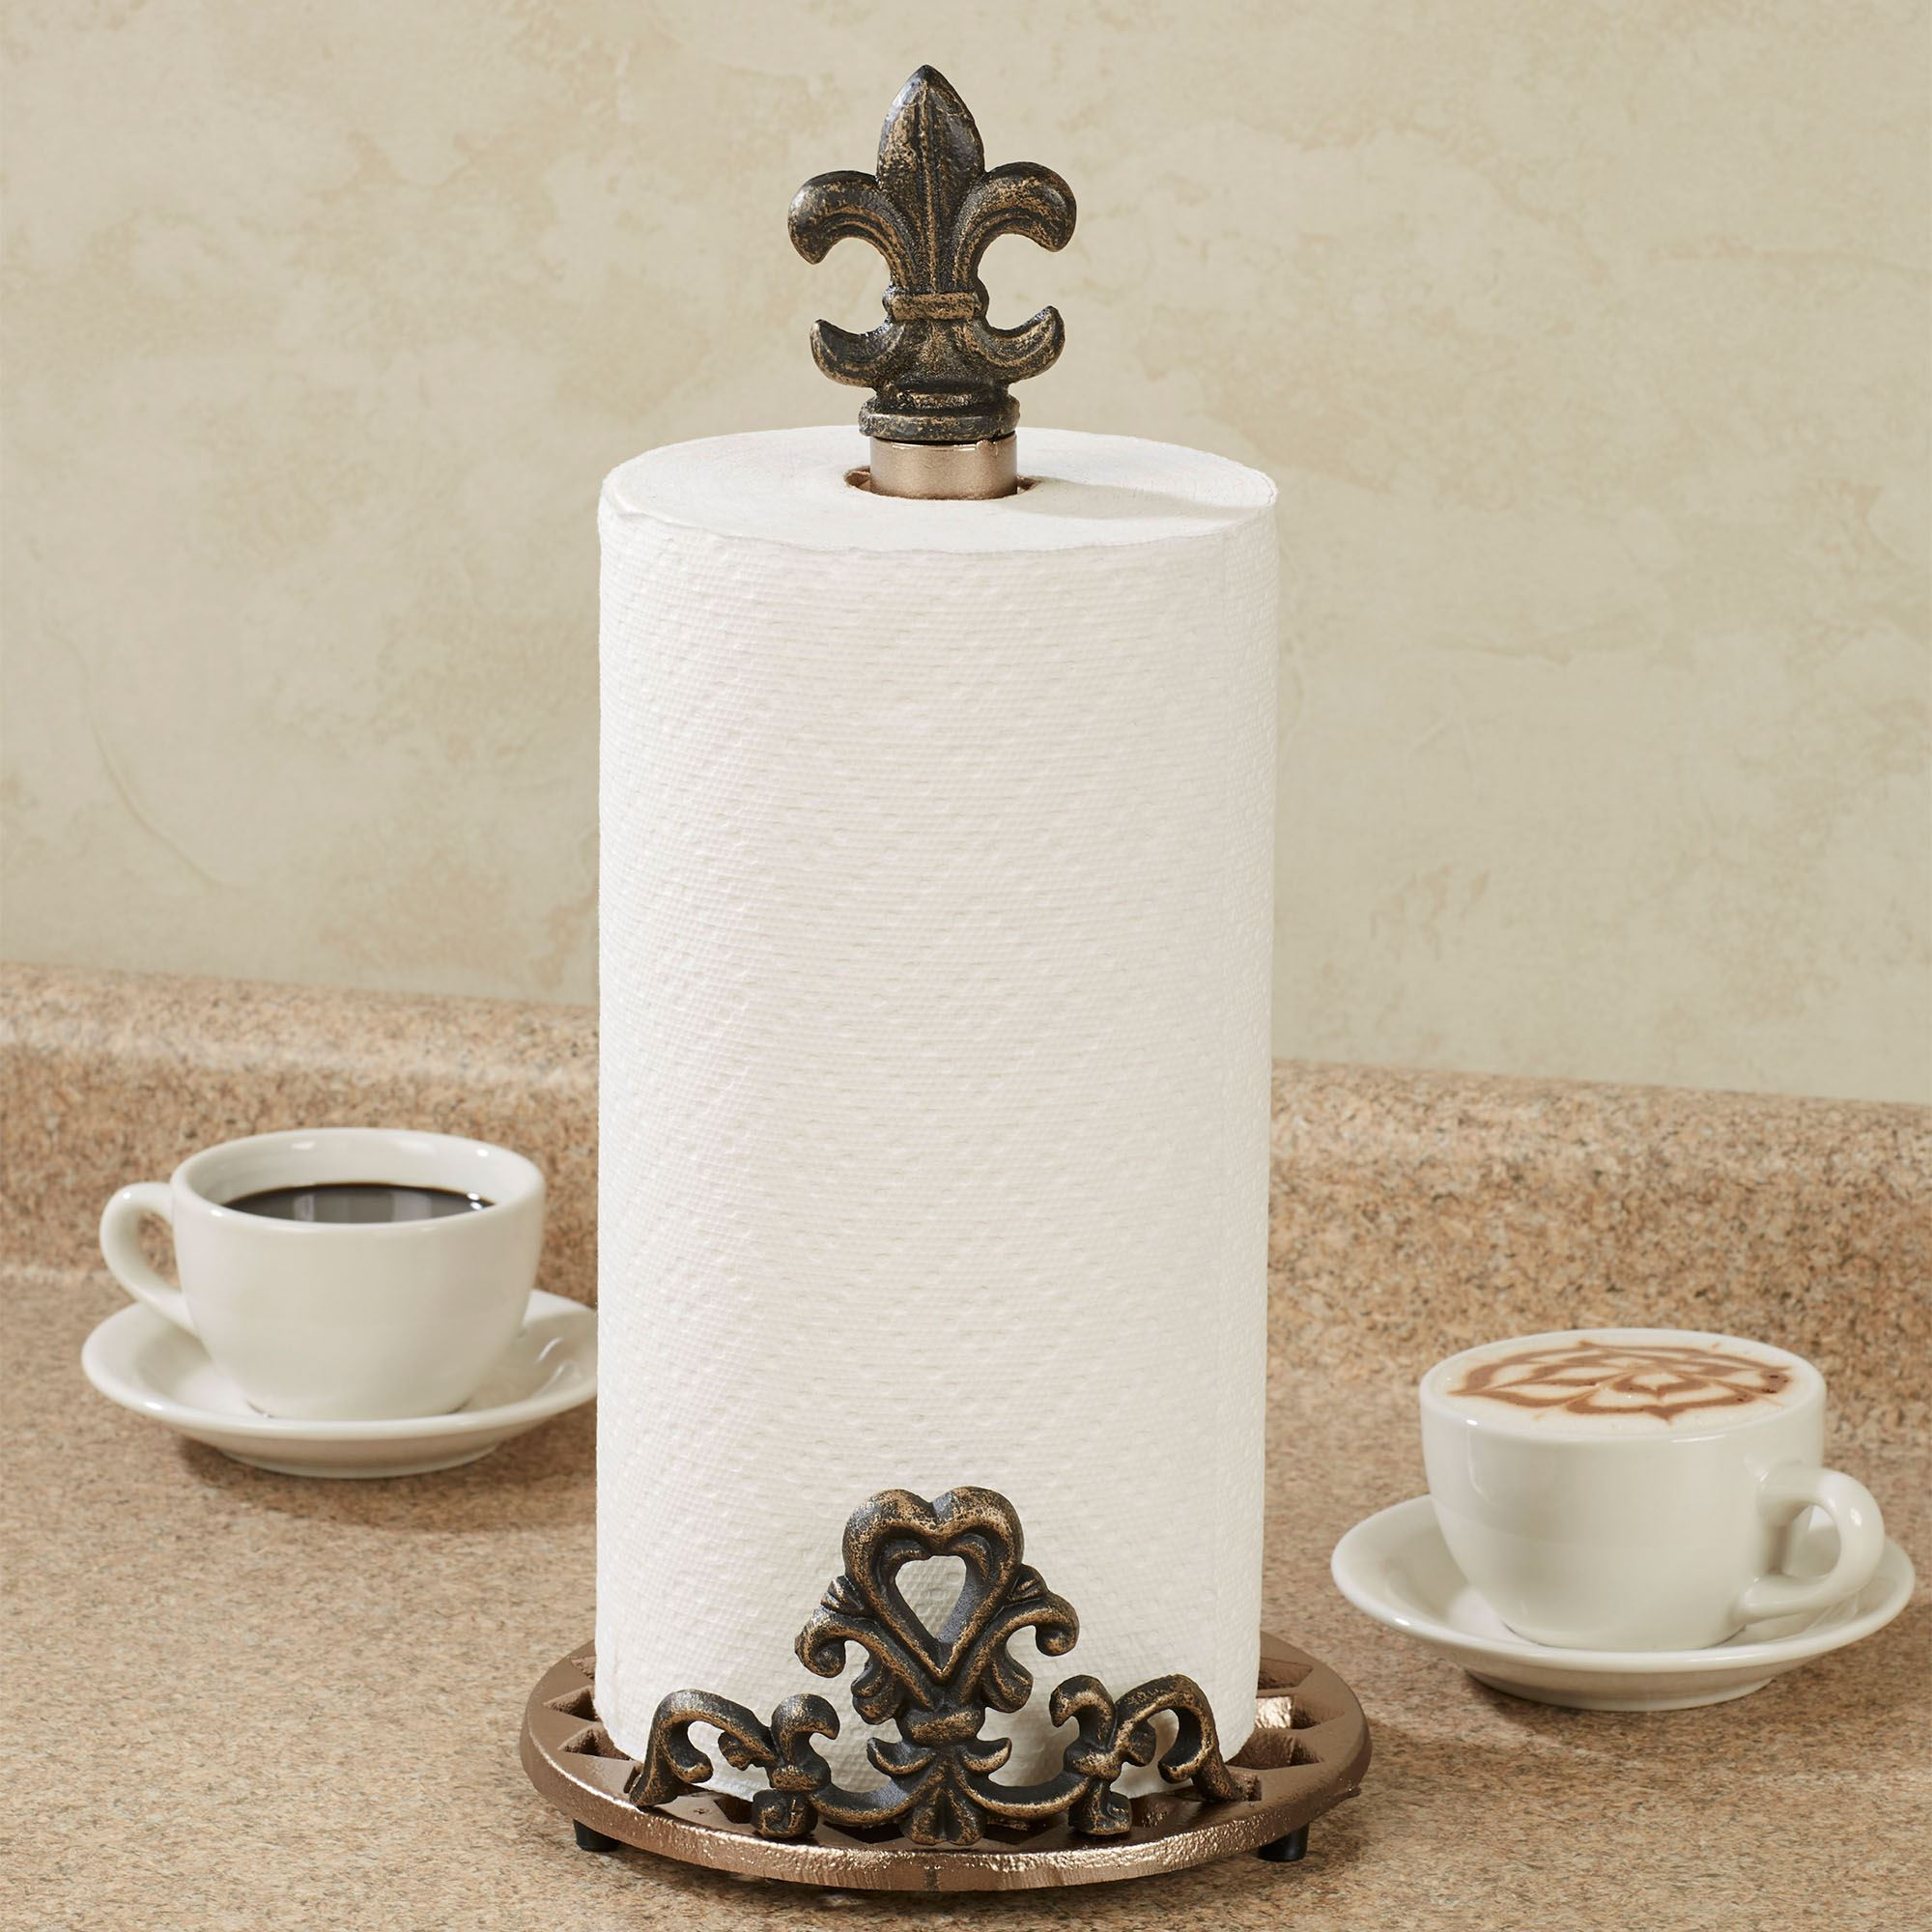 ... Paper Towel Holder Bronze. Click To Expand